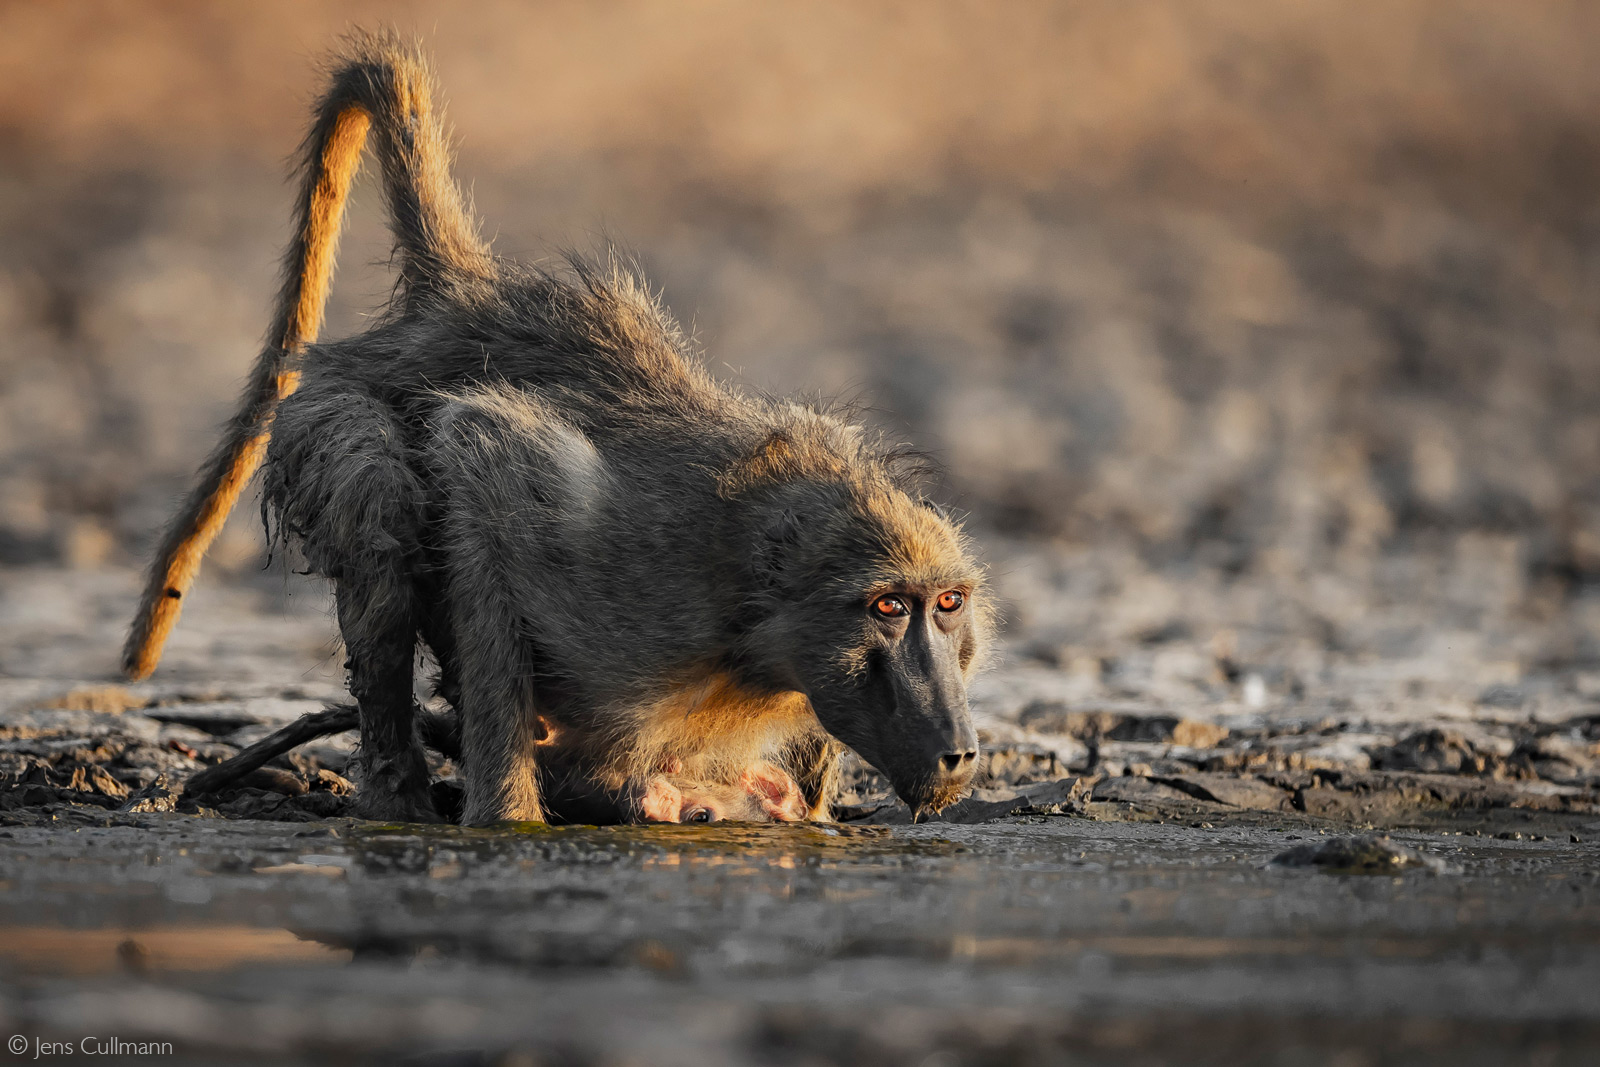 A mother baboon drinks at what's left at Long Pool. The head of the baby looks like it is in the mud, but actually there is a hollow of dried mud behind the water where its head is. Mana Pools National Park, Zimbabwe © Jens Cullmann